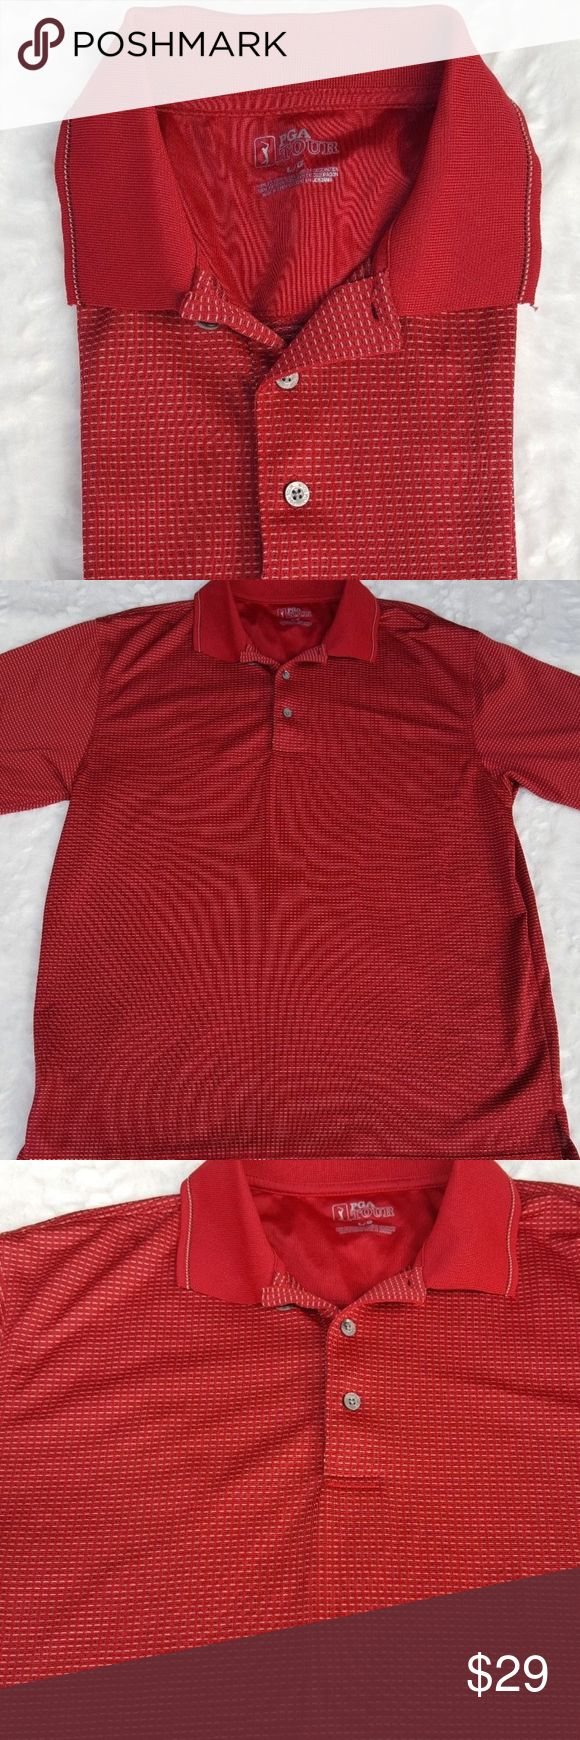 """Mens PGA Red Golf Polo Shirt Size Large Mens PGA Tour Red Golf Polo Shirt Size Large Active Wear Short Sleeve  Type: Mens Shirt Style: Polo Shirt Golf Brand: PGA Tour Material: 100% Polyester Color: Red, White Measurements: Armpit to armpit 22"""", Shoulder to hem 27.75"""" Condition: Used Country of Manufacture: Jordan PGA Tour Shirts Polos"""